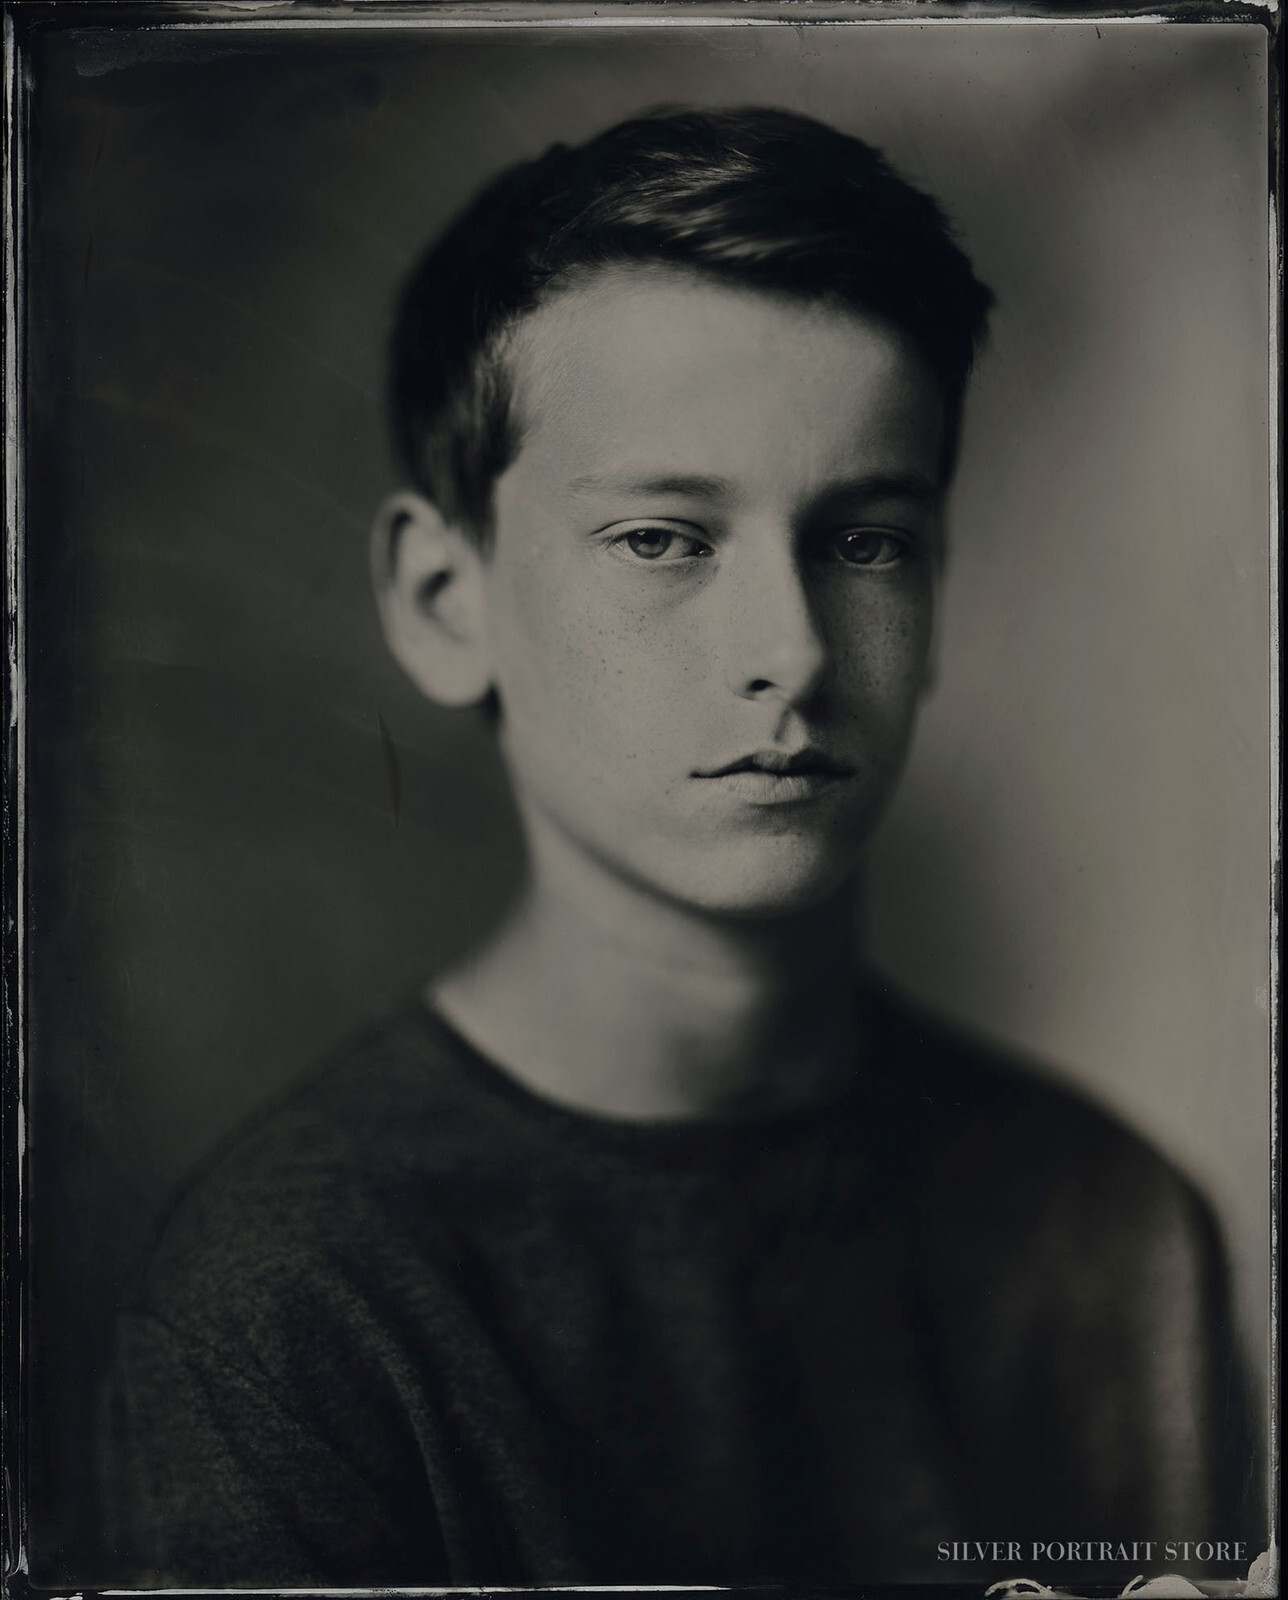 Finn-Silver Portrait Store-scan from Wet plate collodion-Tintype 20 x 25 cm.